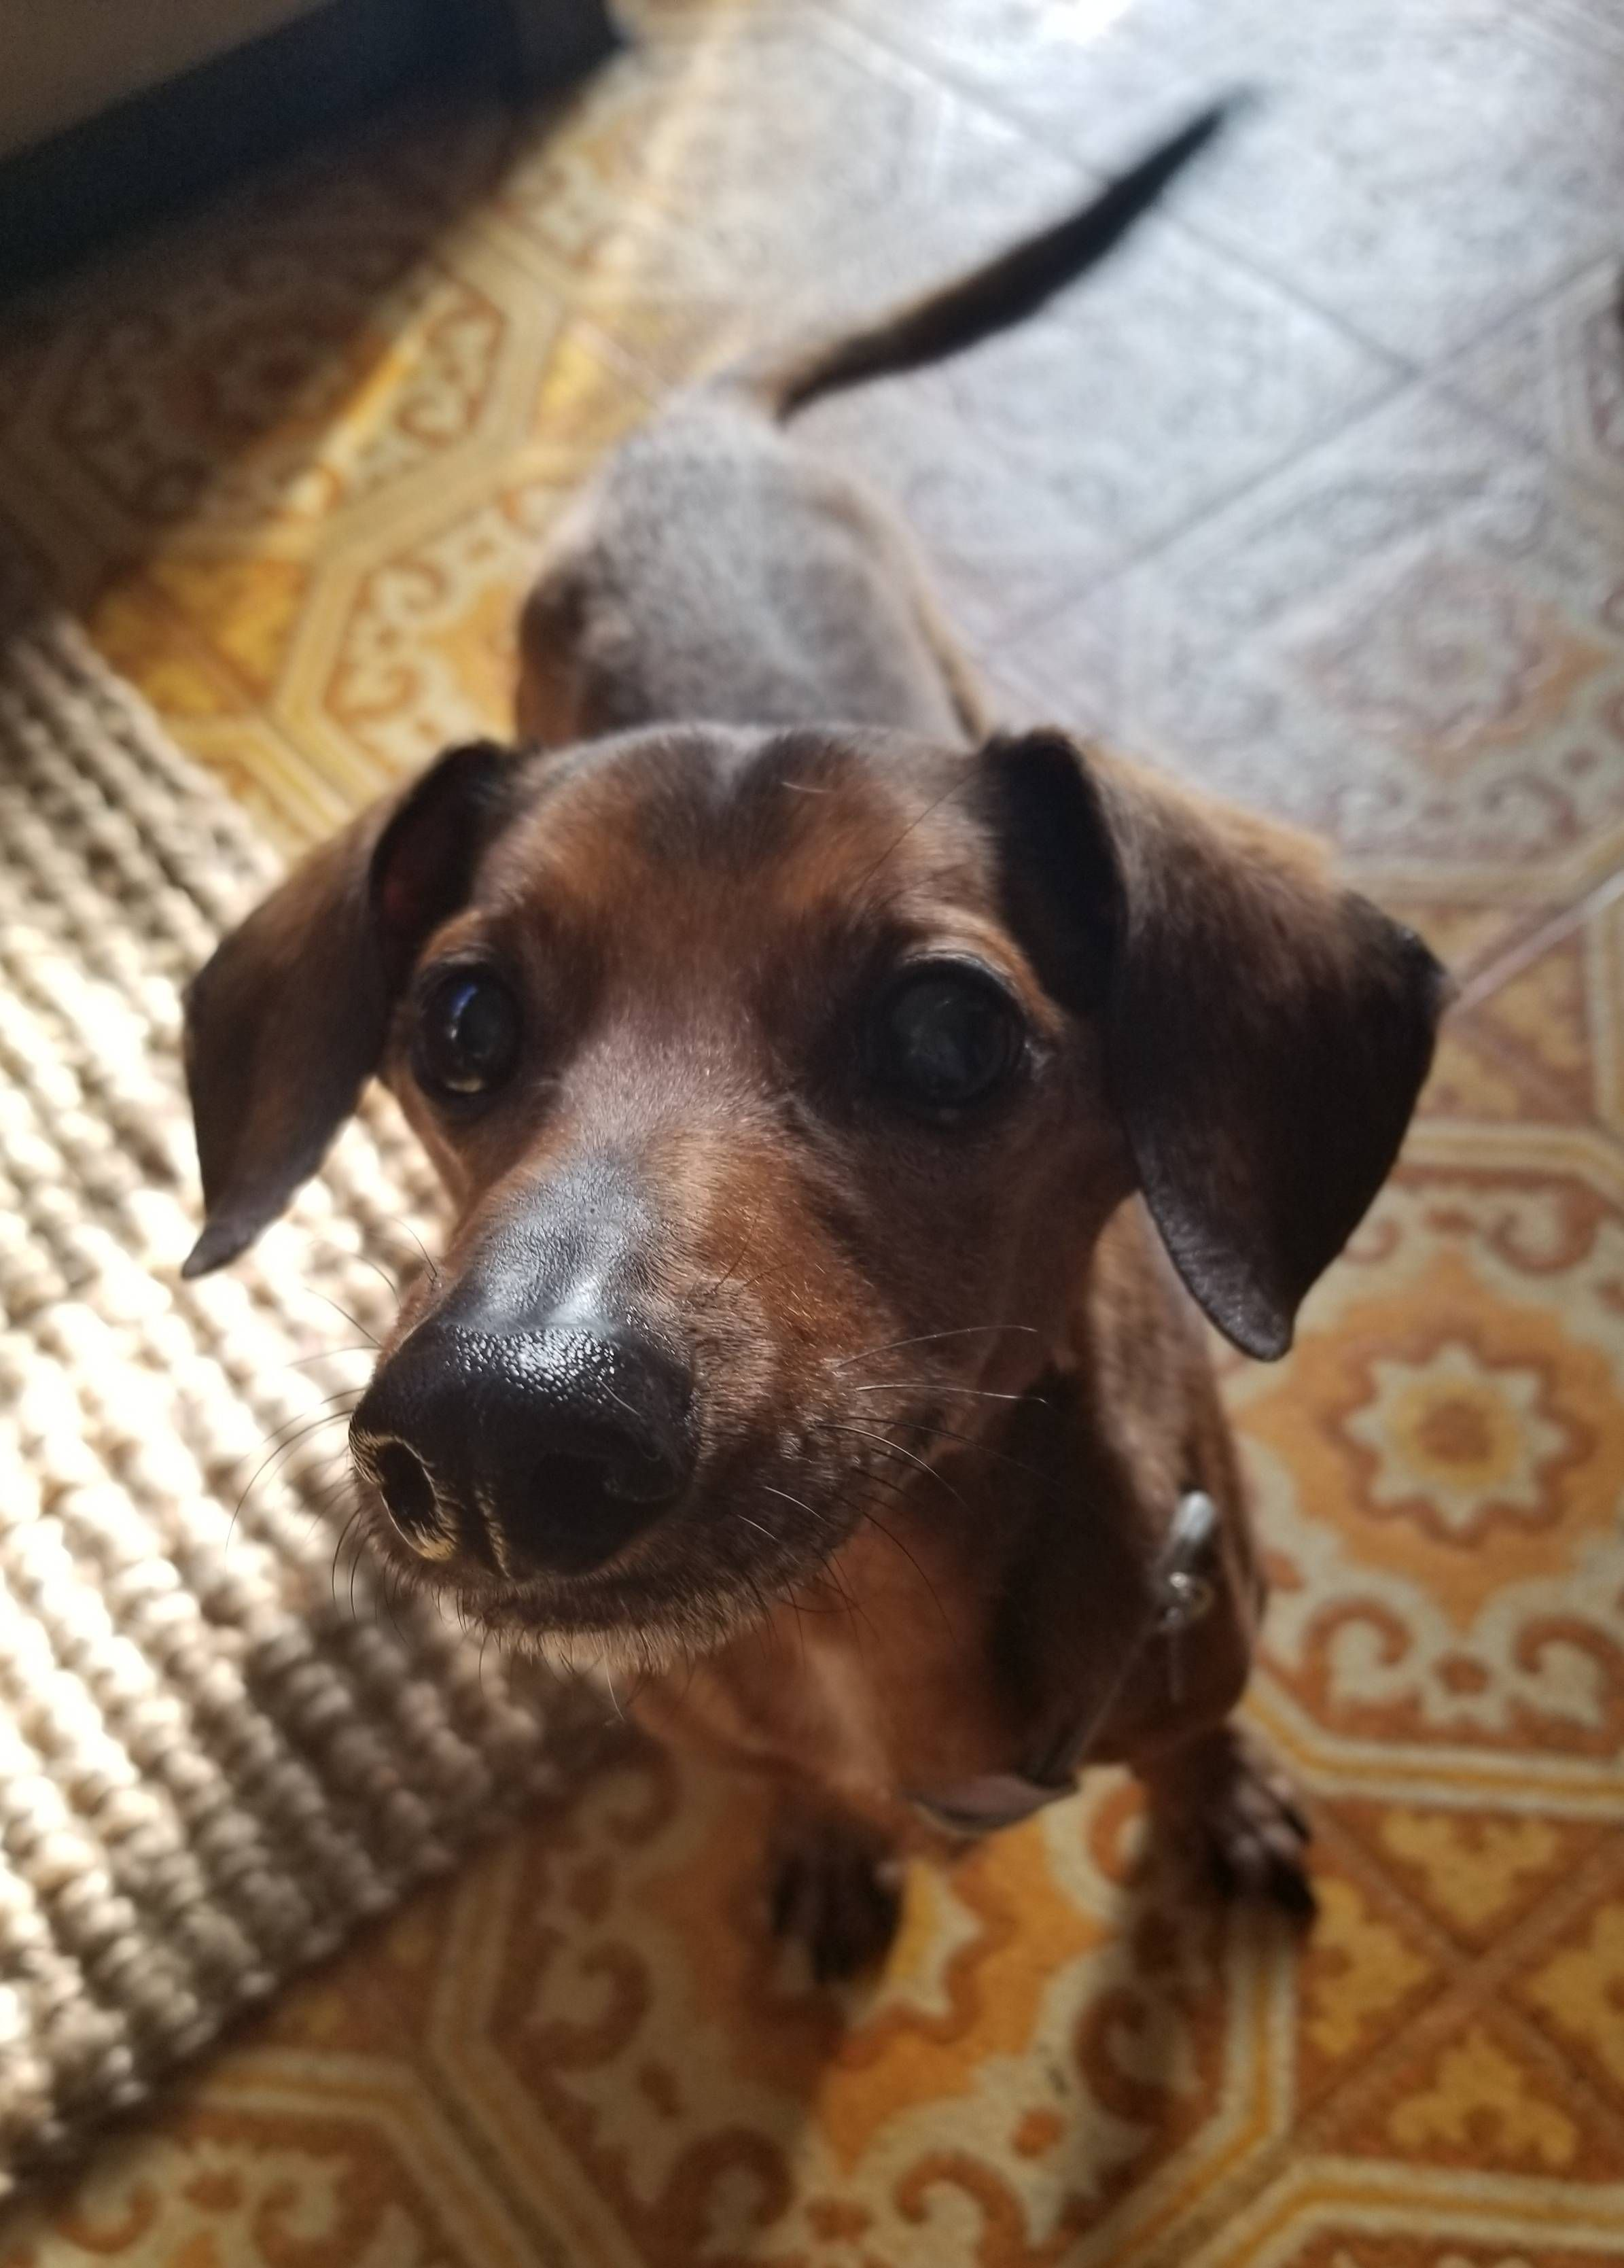 My Fiance And I Adopted A 14yr Old Dachshund Today Meet Kingston